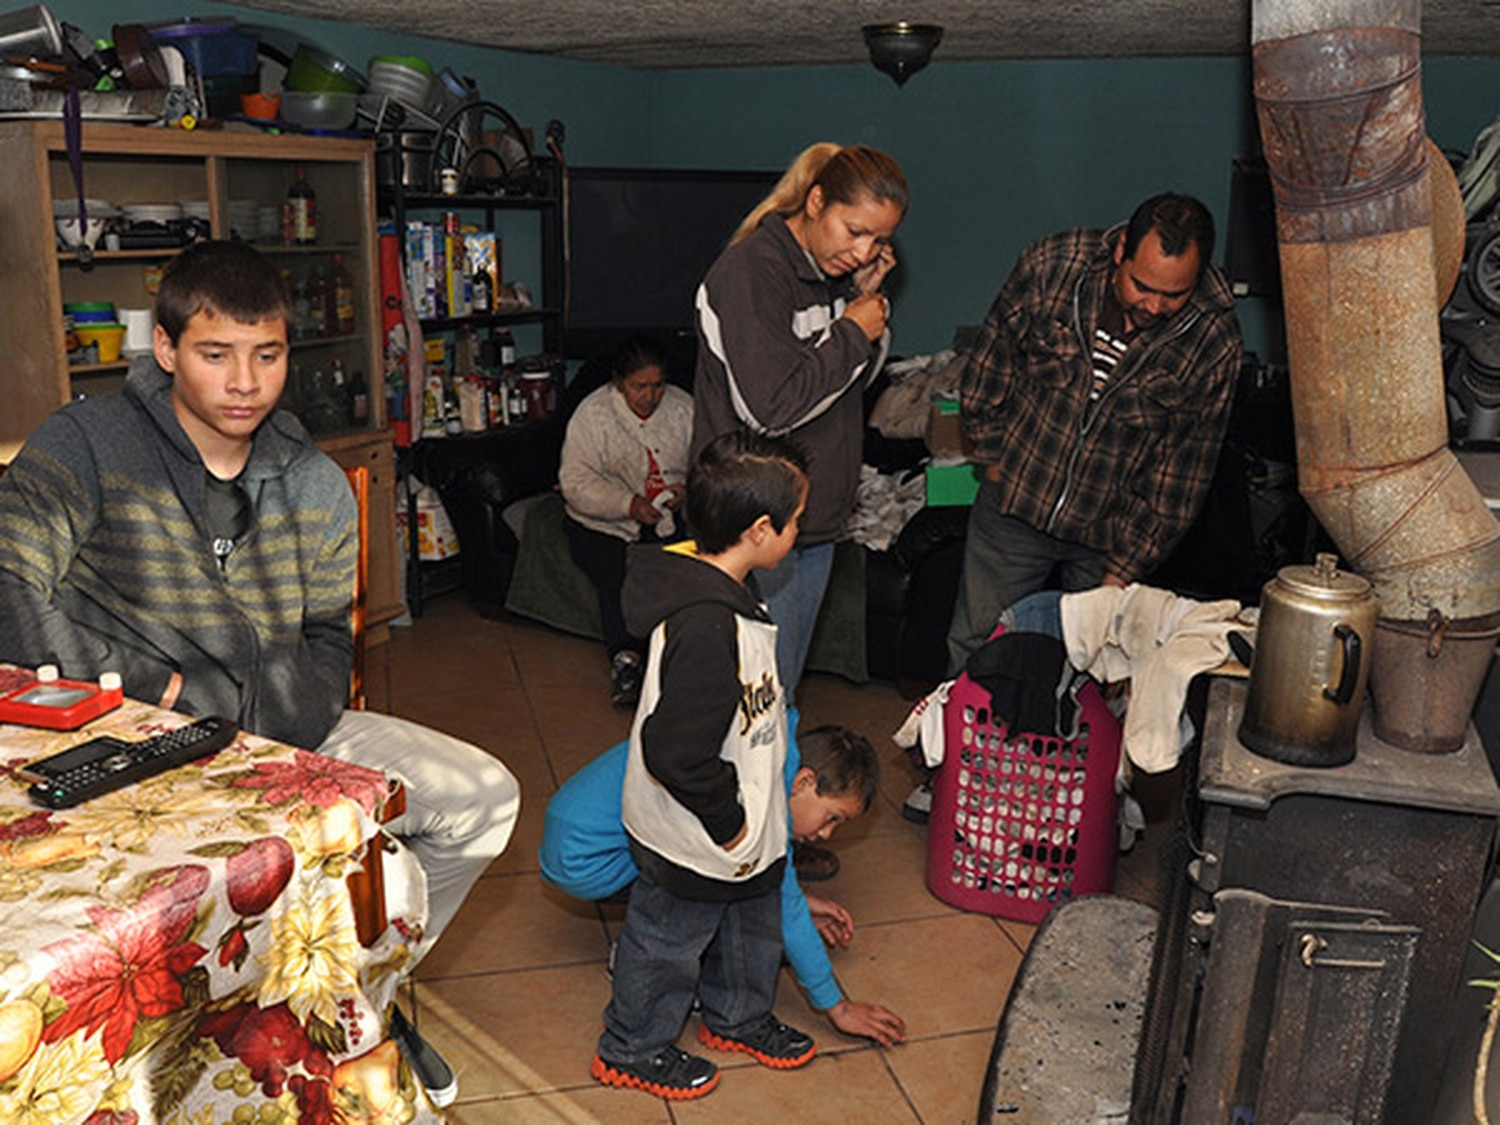 Victor and Claudia Padilla; son Kevin (14), is at left; Dylan (8) is in black and white hoodie, Brian (13) is kneeling down. The wood burning stove is the only heat source in the living room.